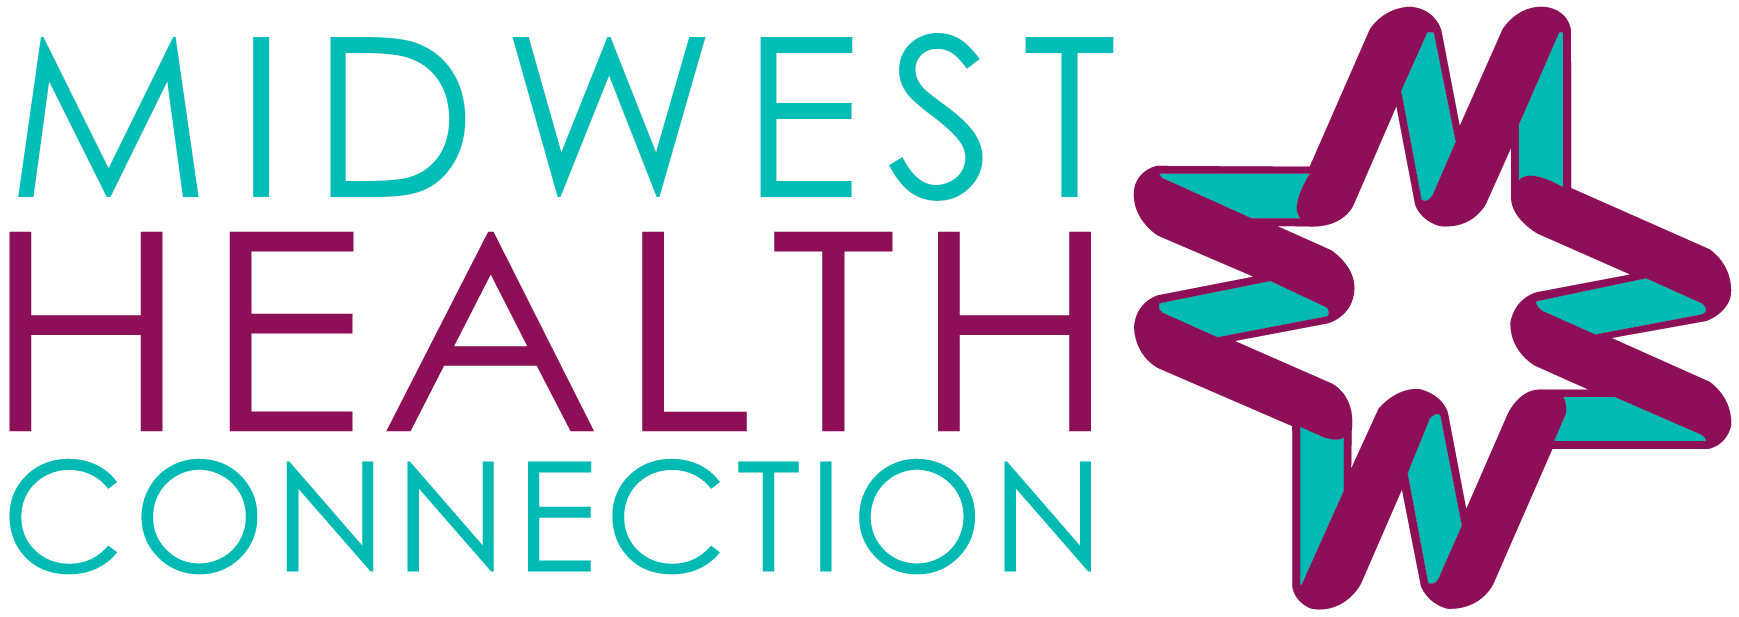 Midwest Health Connection